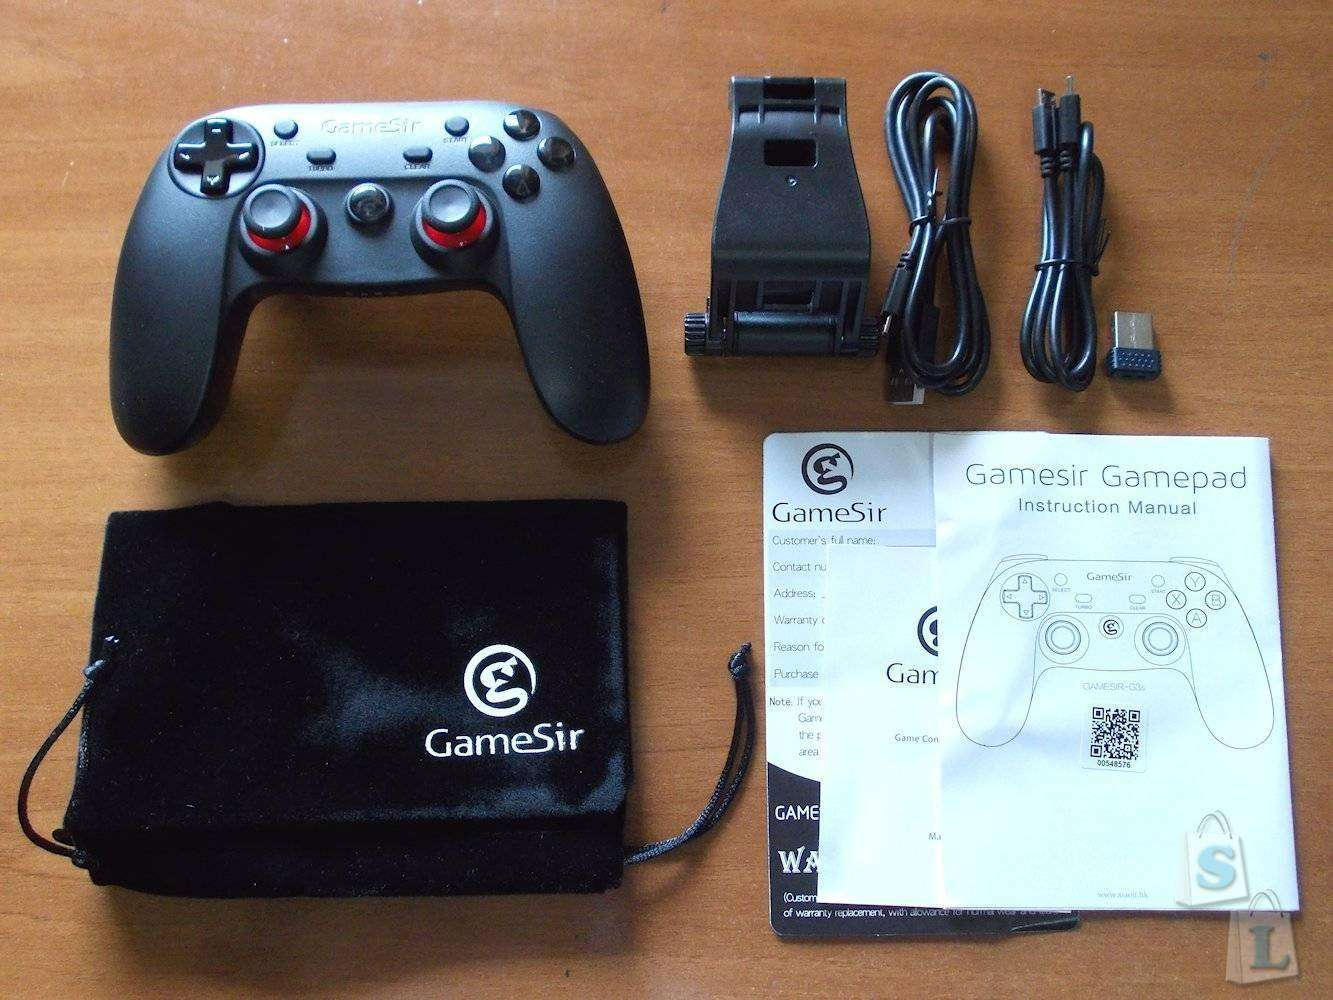 Aliexpress: Bluetooth джойстик GameSir G3s для Android, PC, Mac и PS3